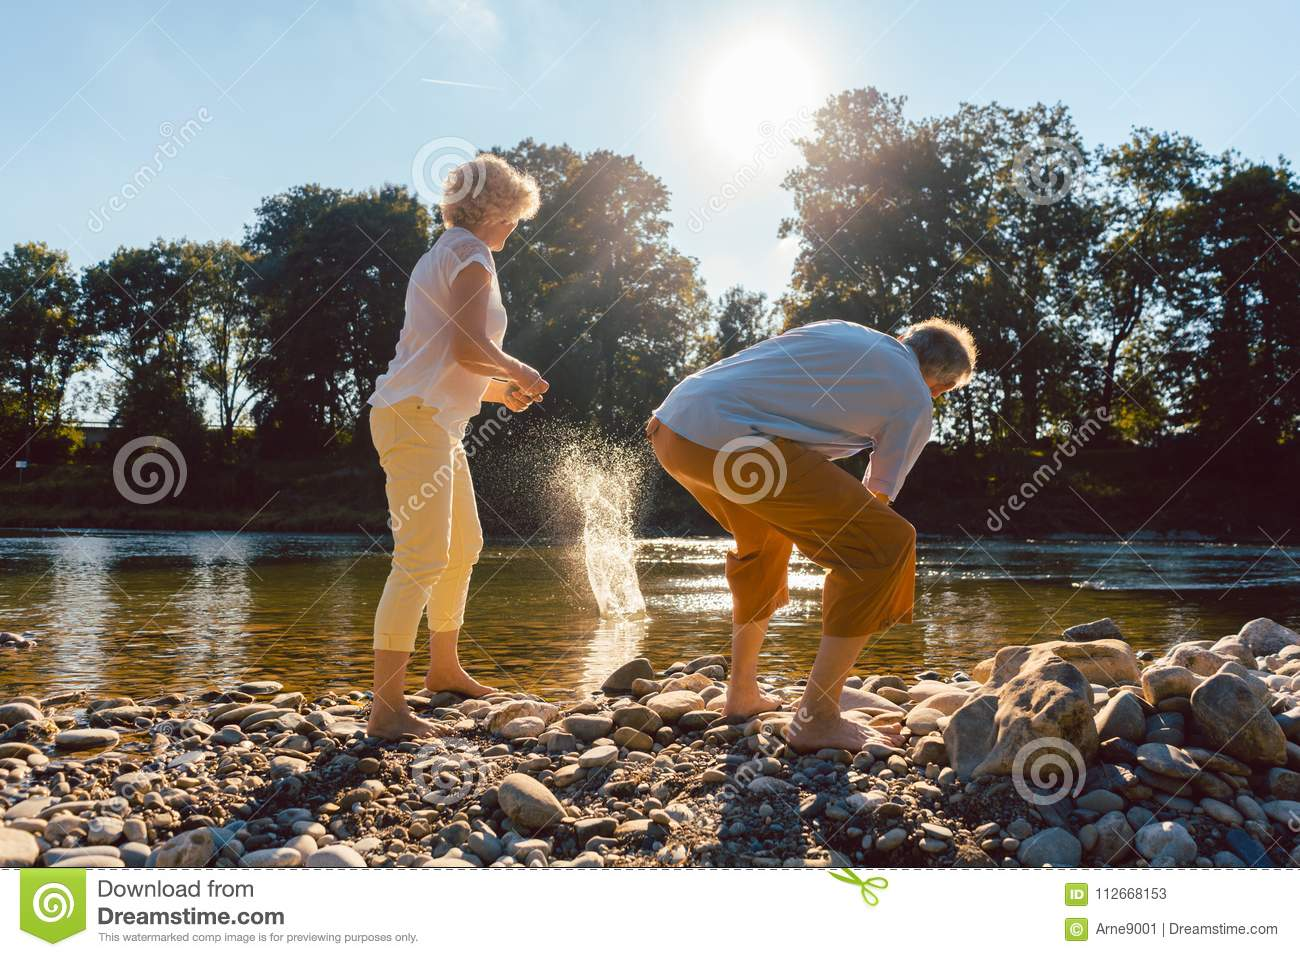 Two senior people enjoying retirement and simplicity